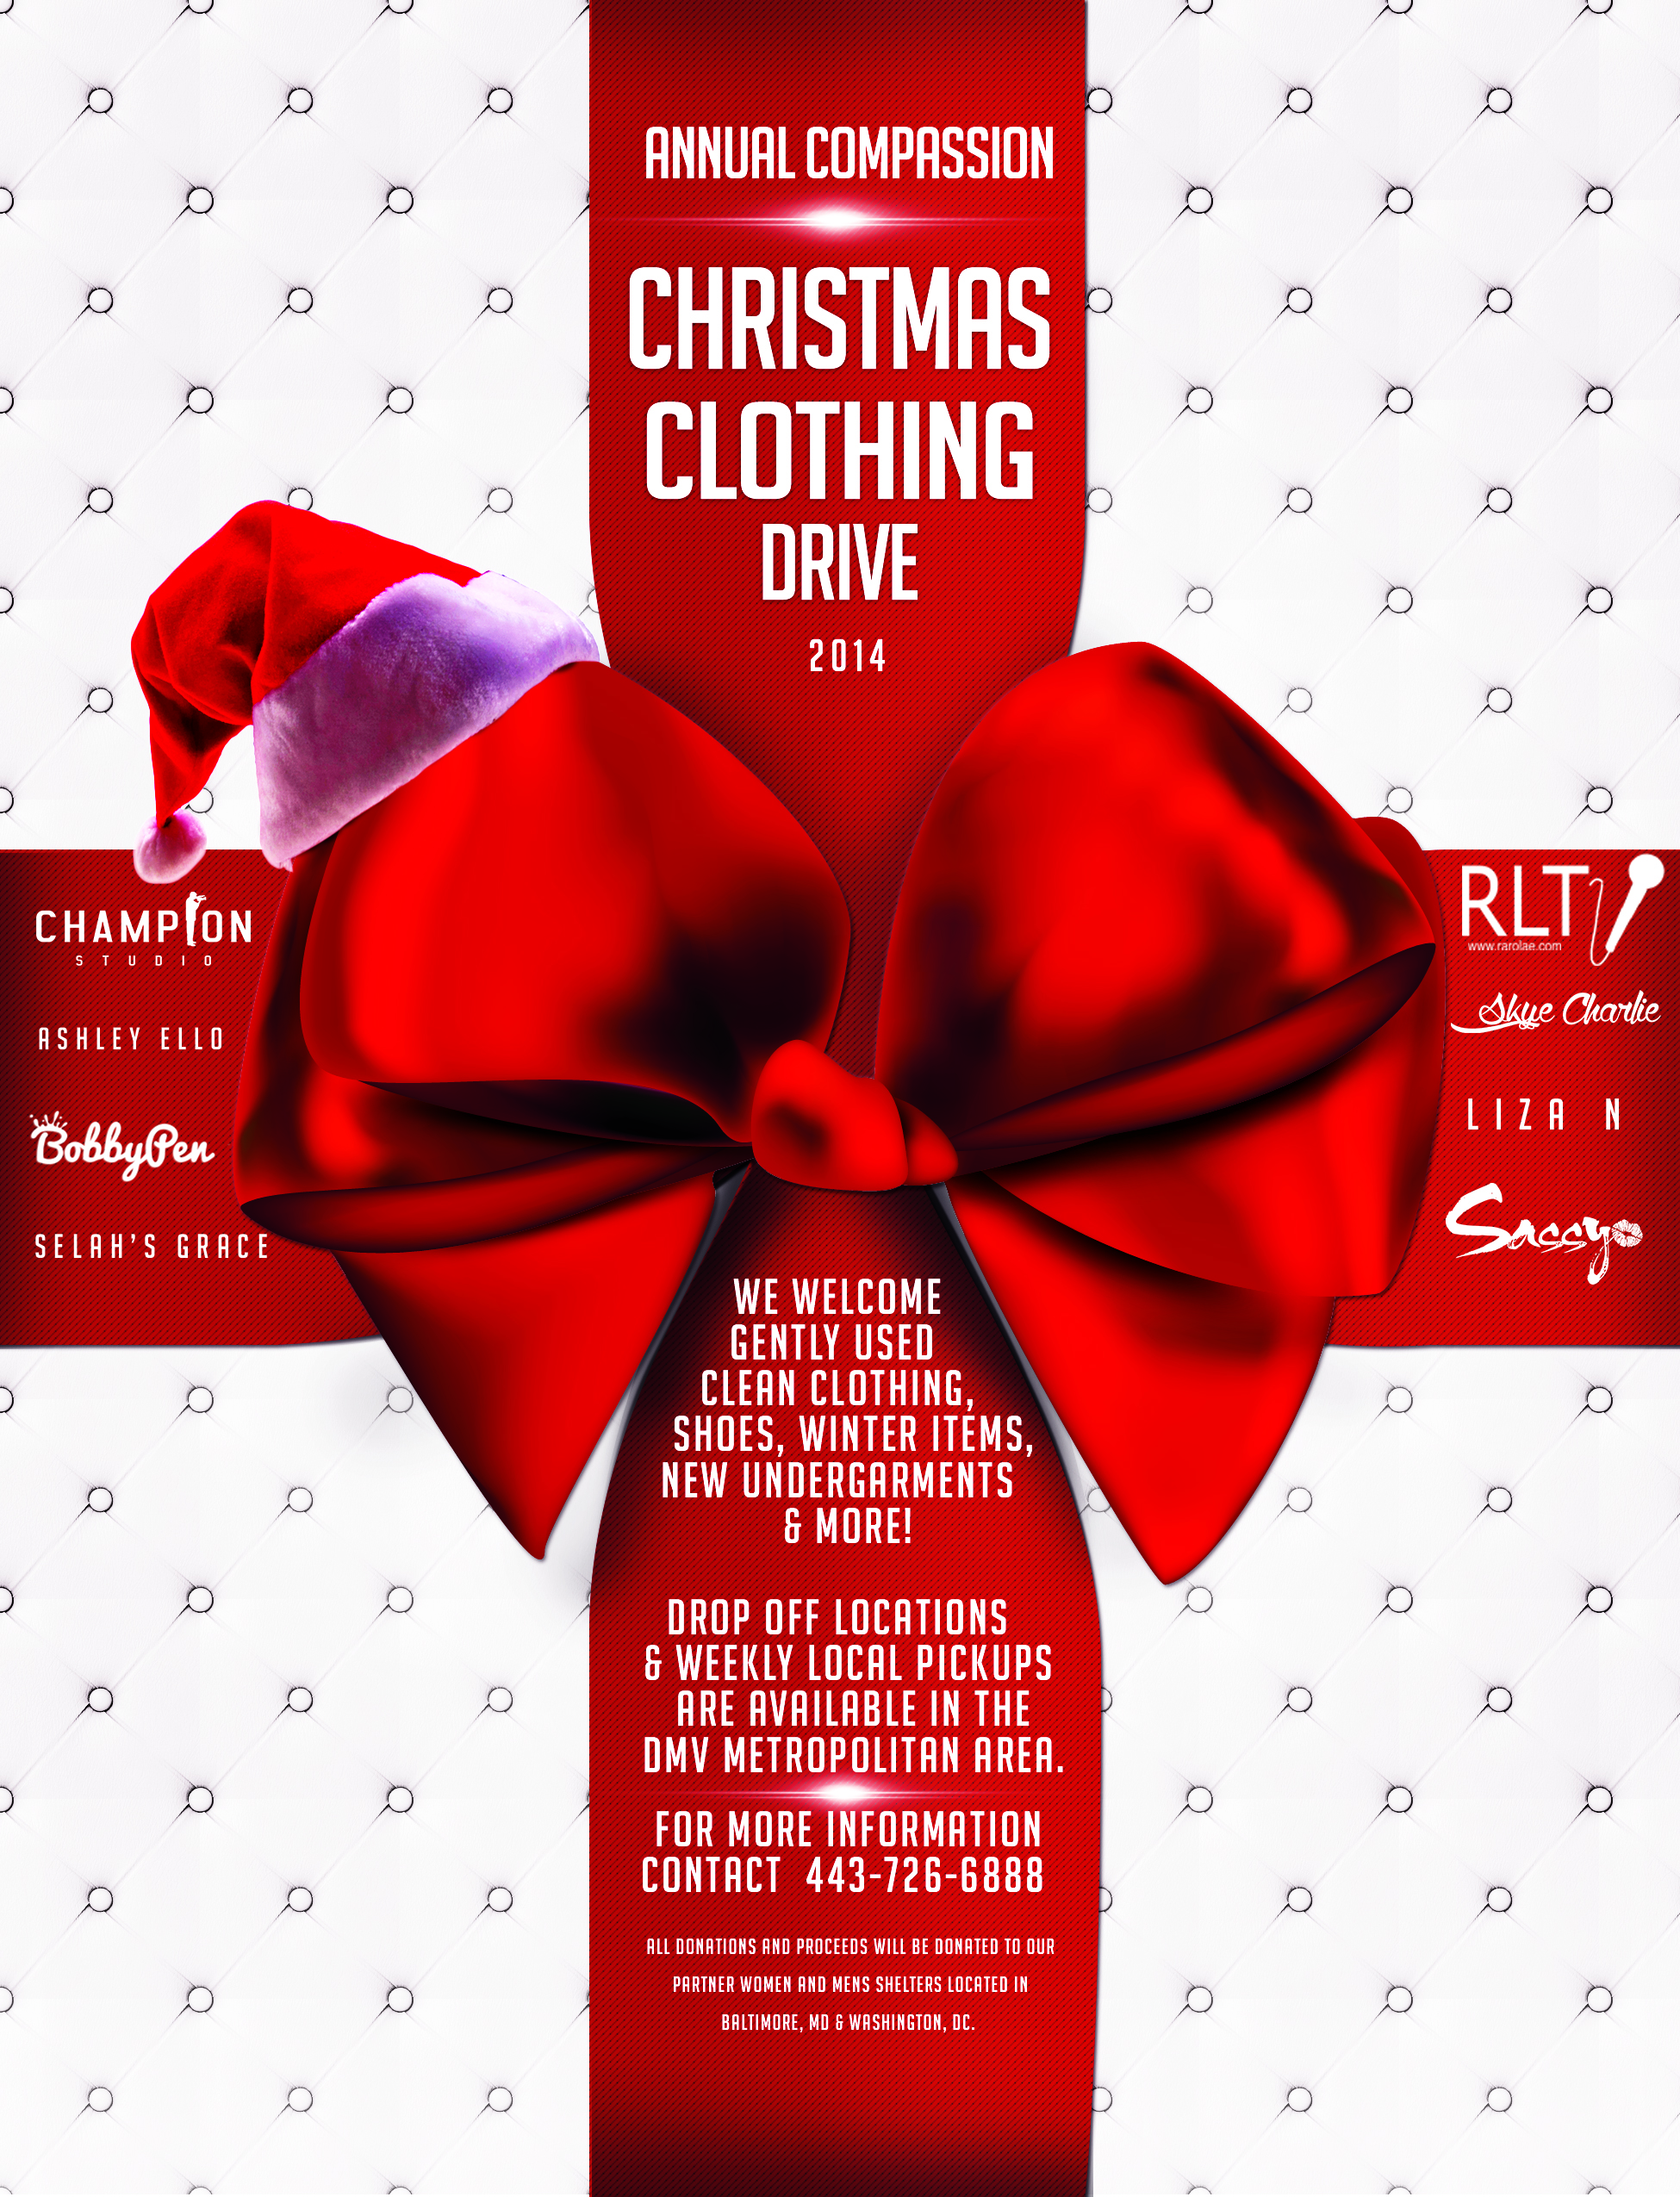 dmv annual christmas compassion clothing clothing drive accepting